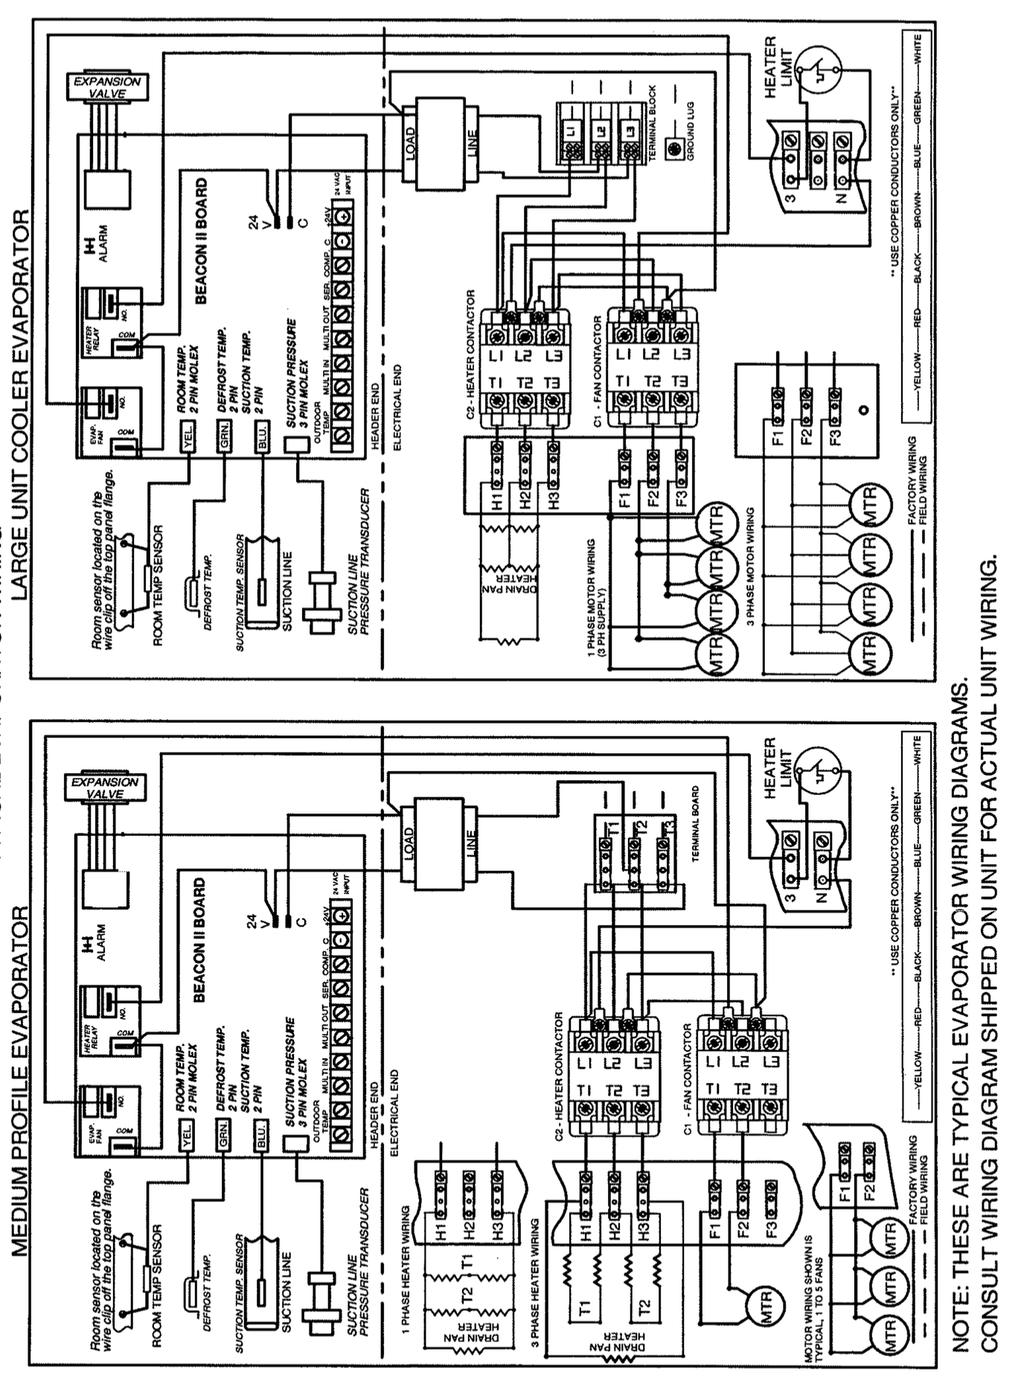 Installation And Operation Manual Pdf Low Temperature Defrost Timer Wiring Diagram Box Typical Electric 31